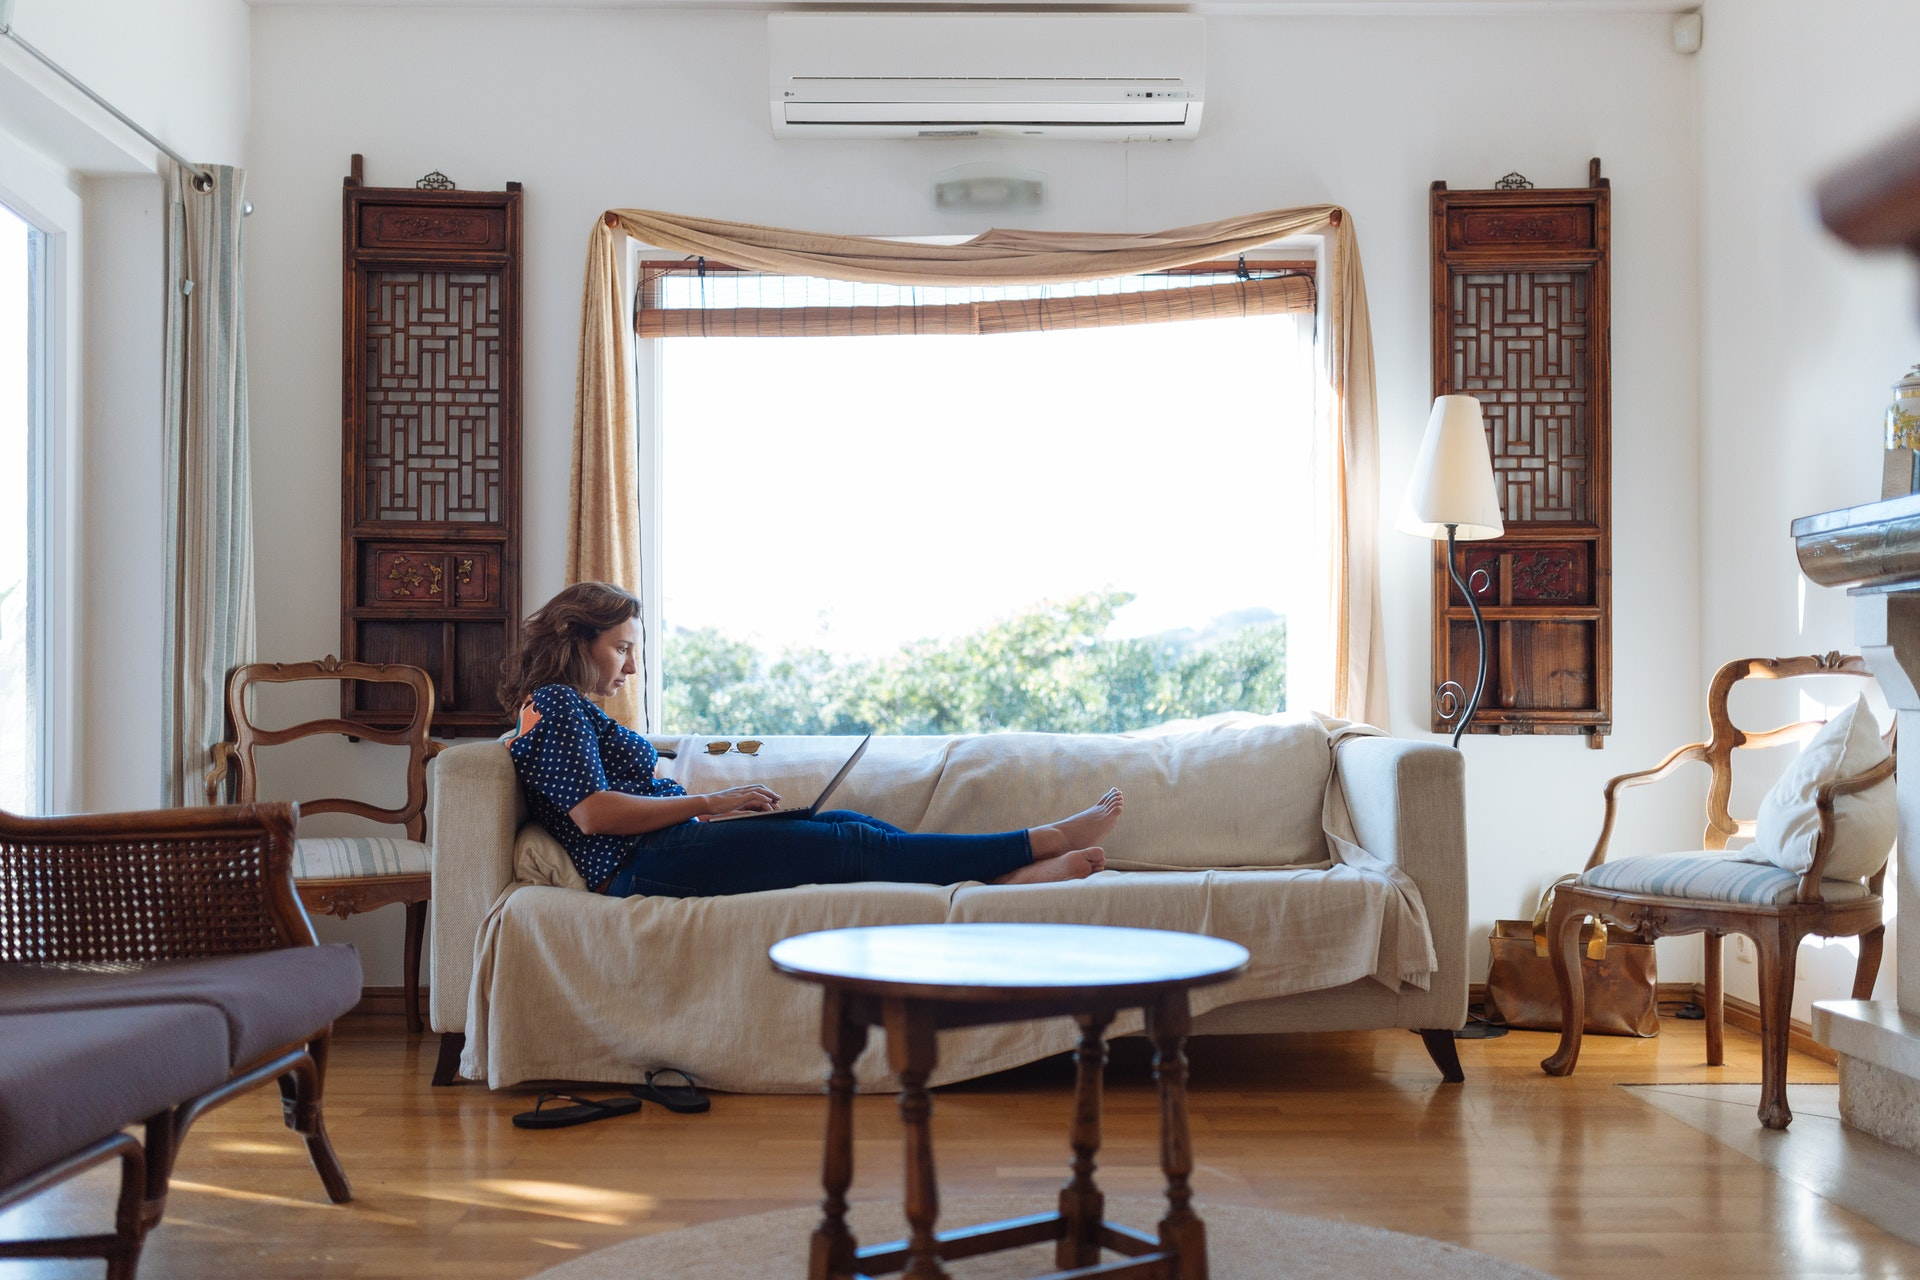 How to choose an air conditioner which gets your money's worth and is suitable for your room